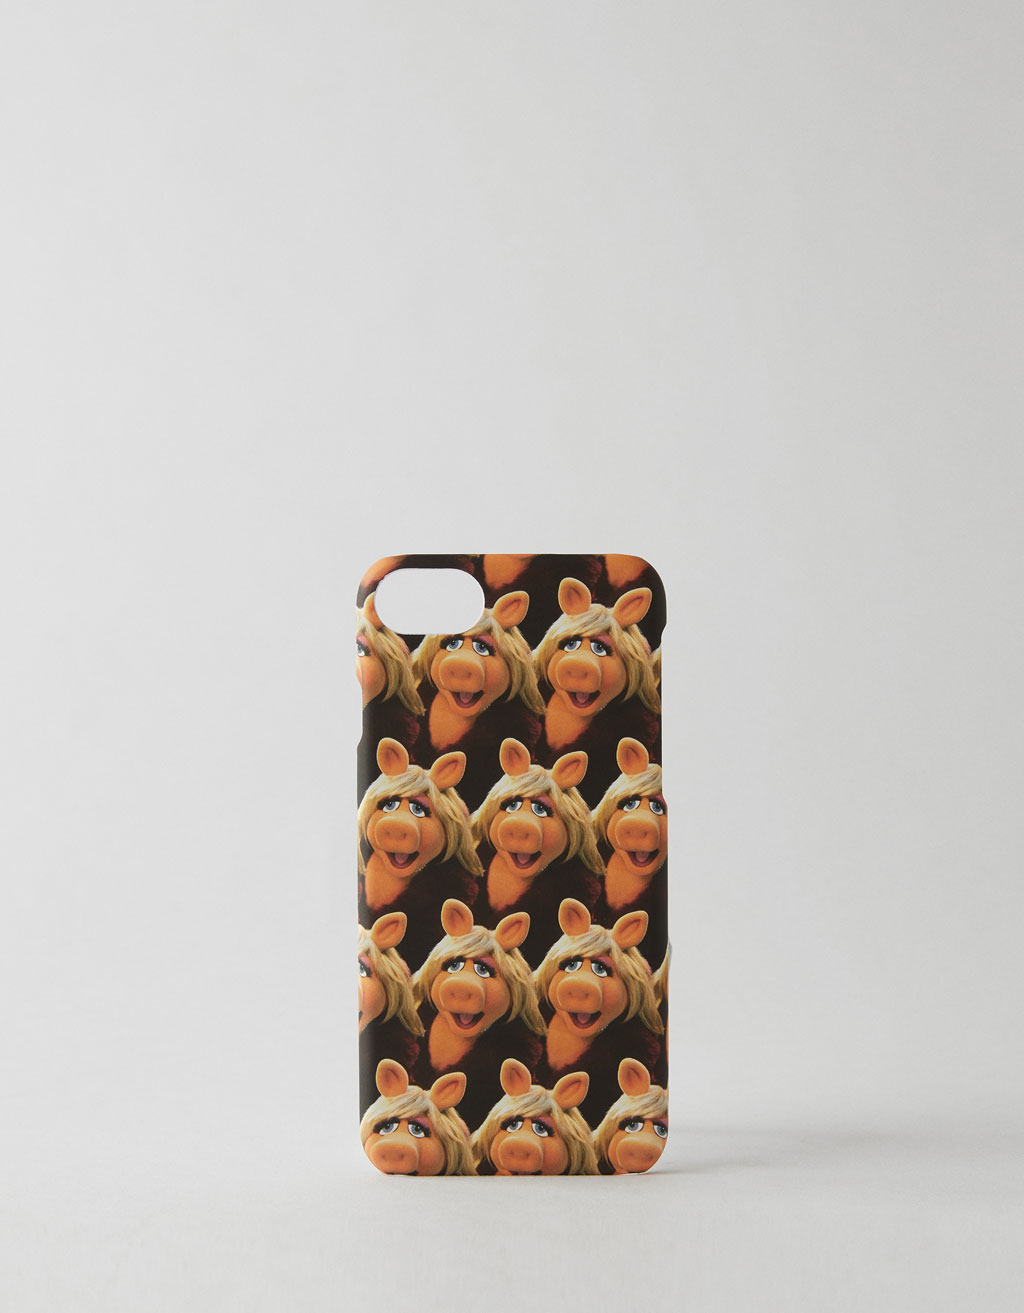 Muppets-Handyhülle Miss Piggy für iPhone 6 / 6S / 7 / 8